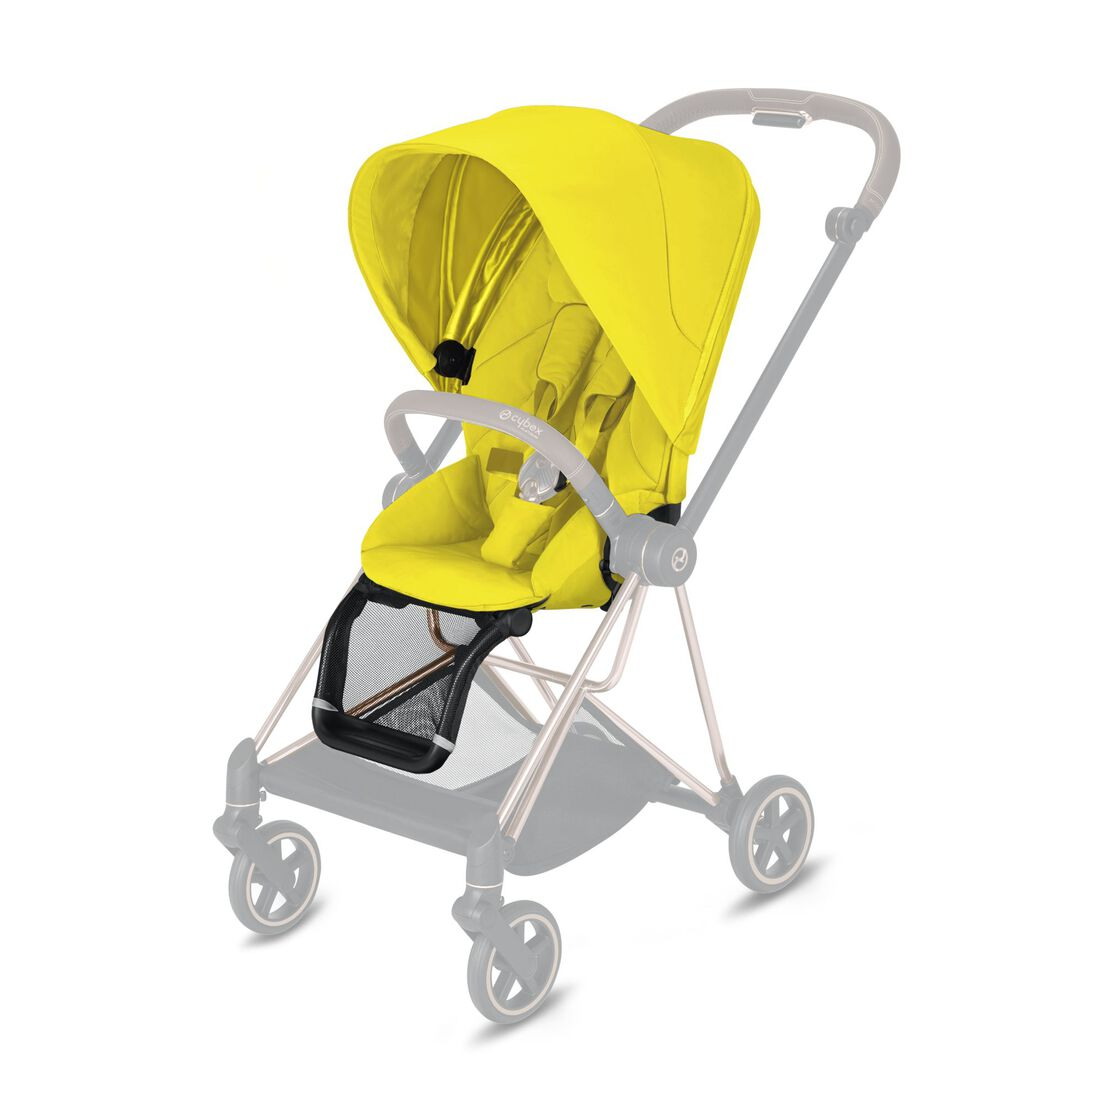 CYBEX Mios Seat Pack - Mustard Yellow in Mustard Yellow large image number 1